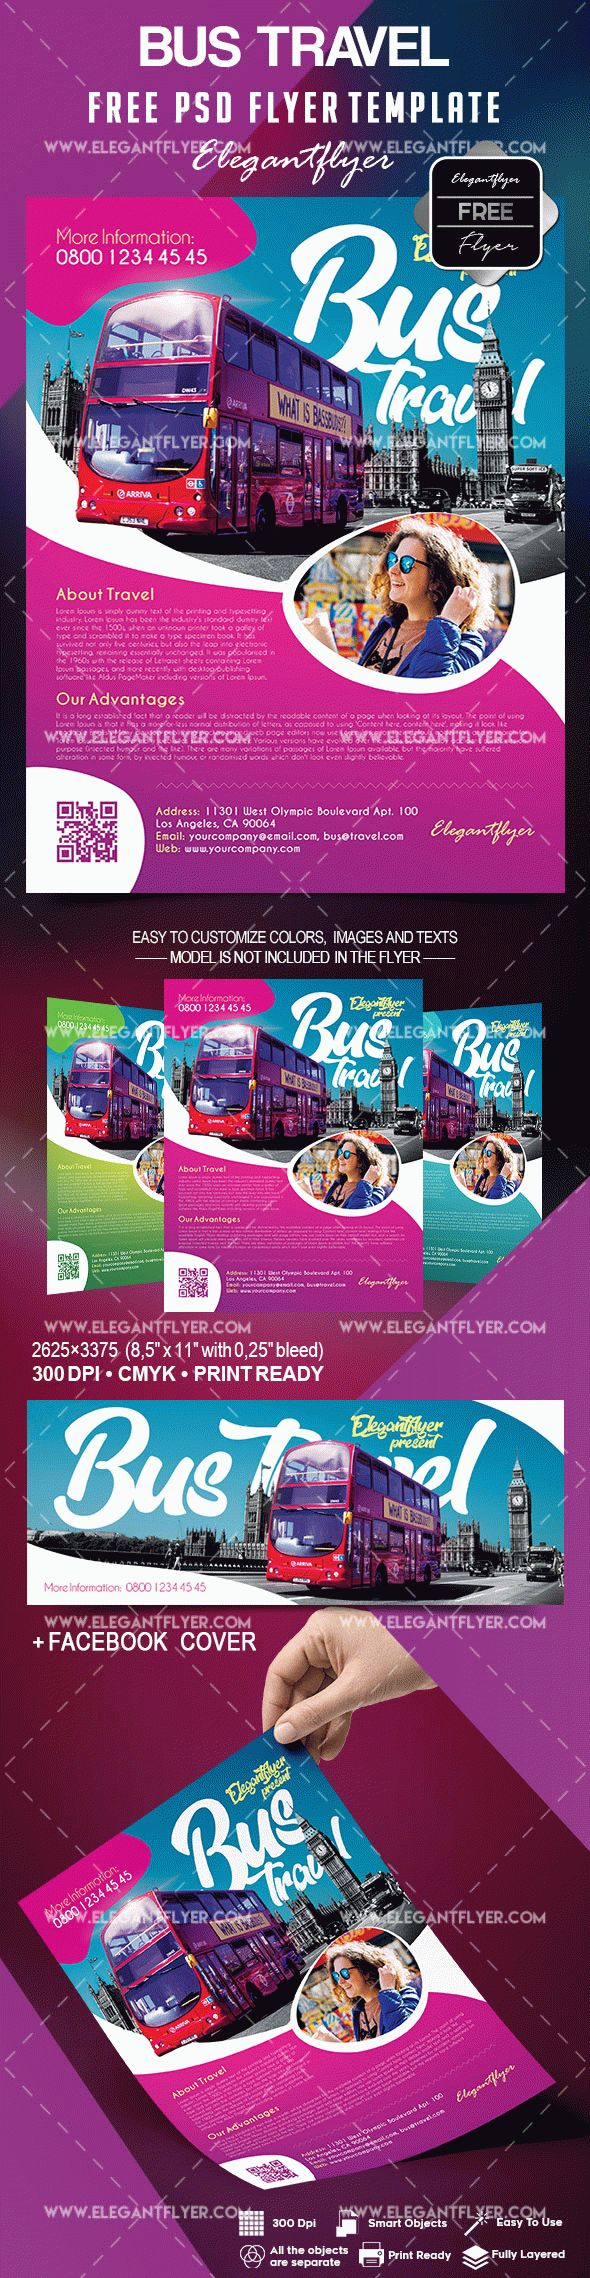 Free bus travel flyer template by elegantflyer free bus travel flyer template pronofoot35fo Choice Image